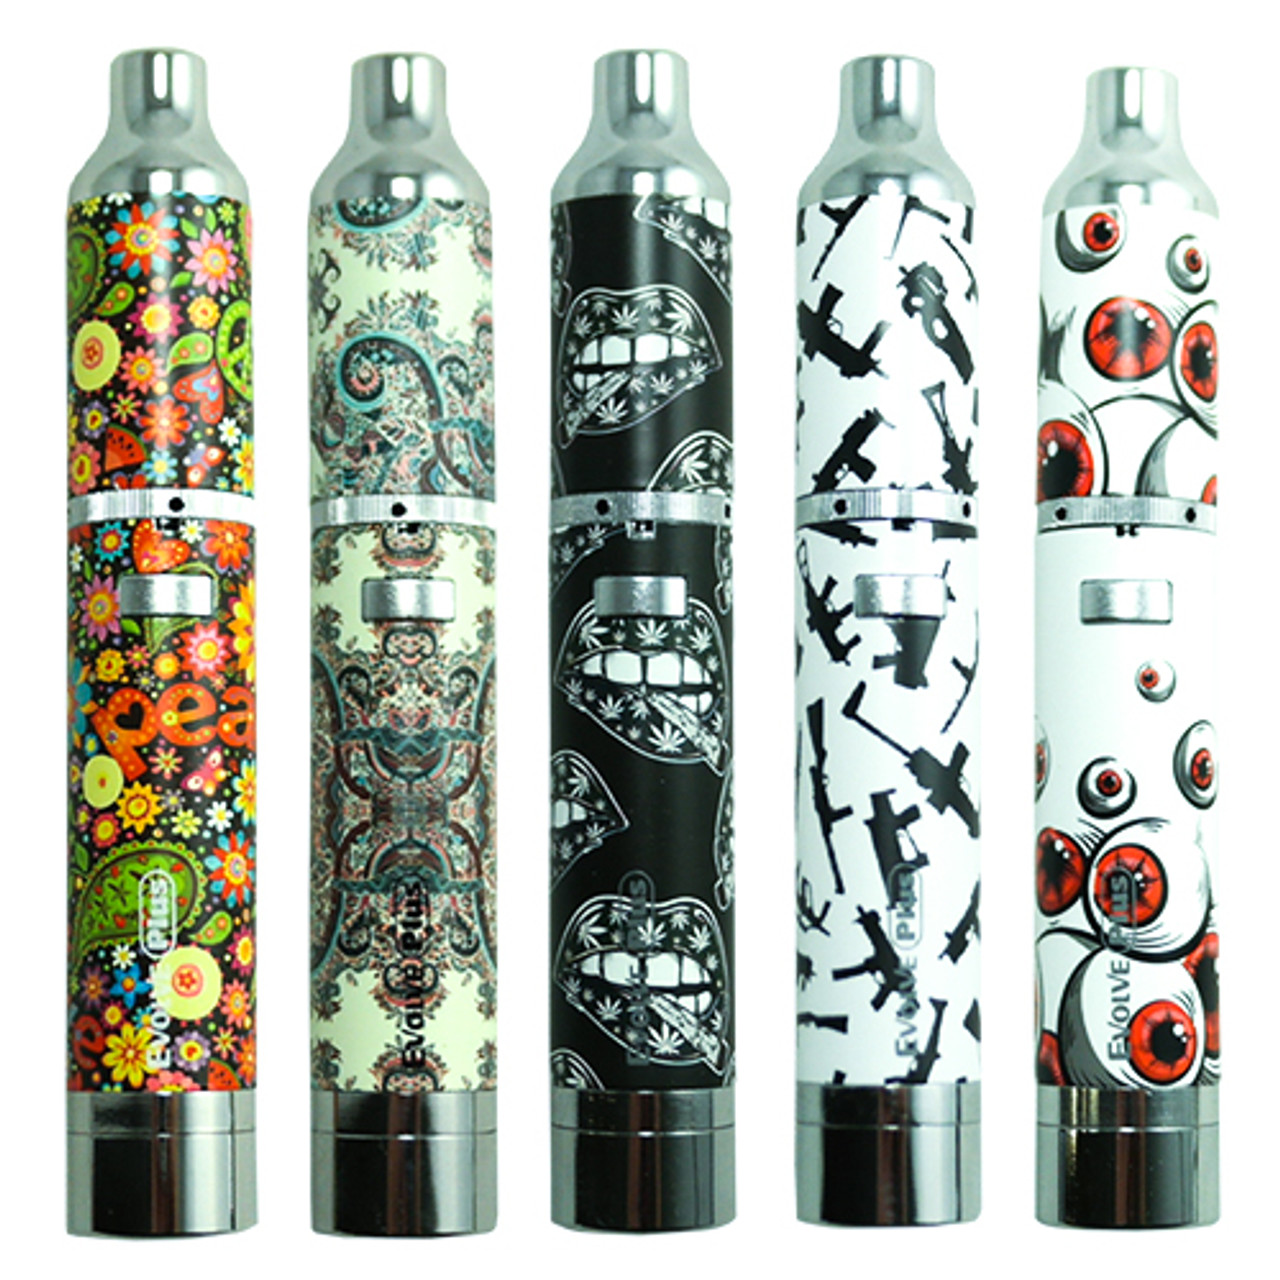 Yocan Evolve Plus Vaporizer Limited Edition